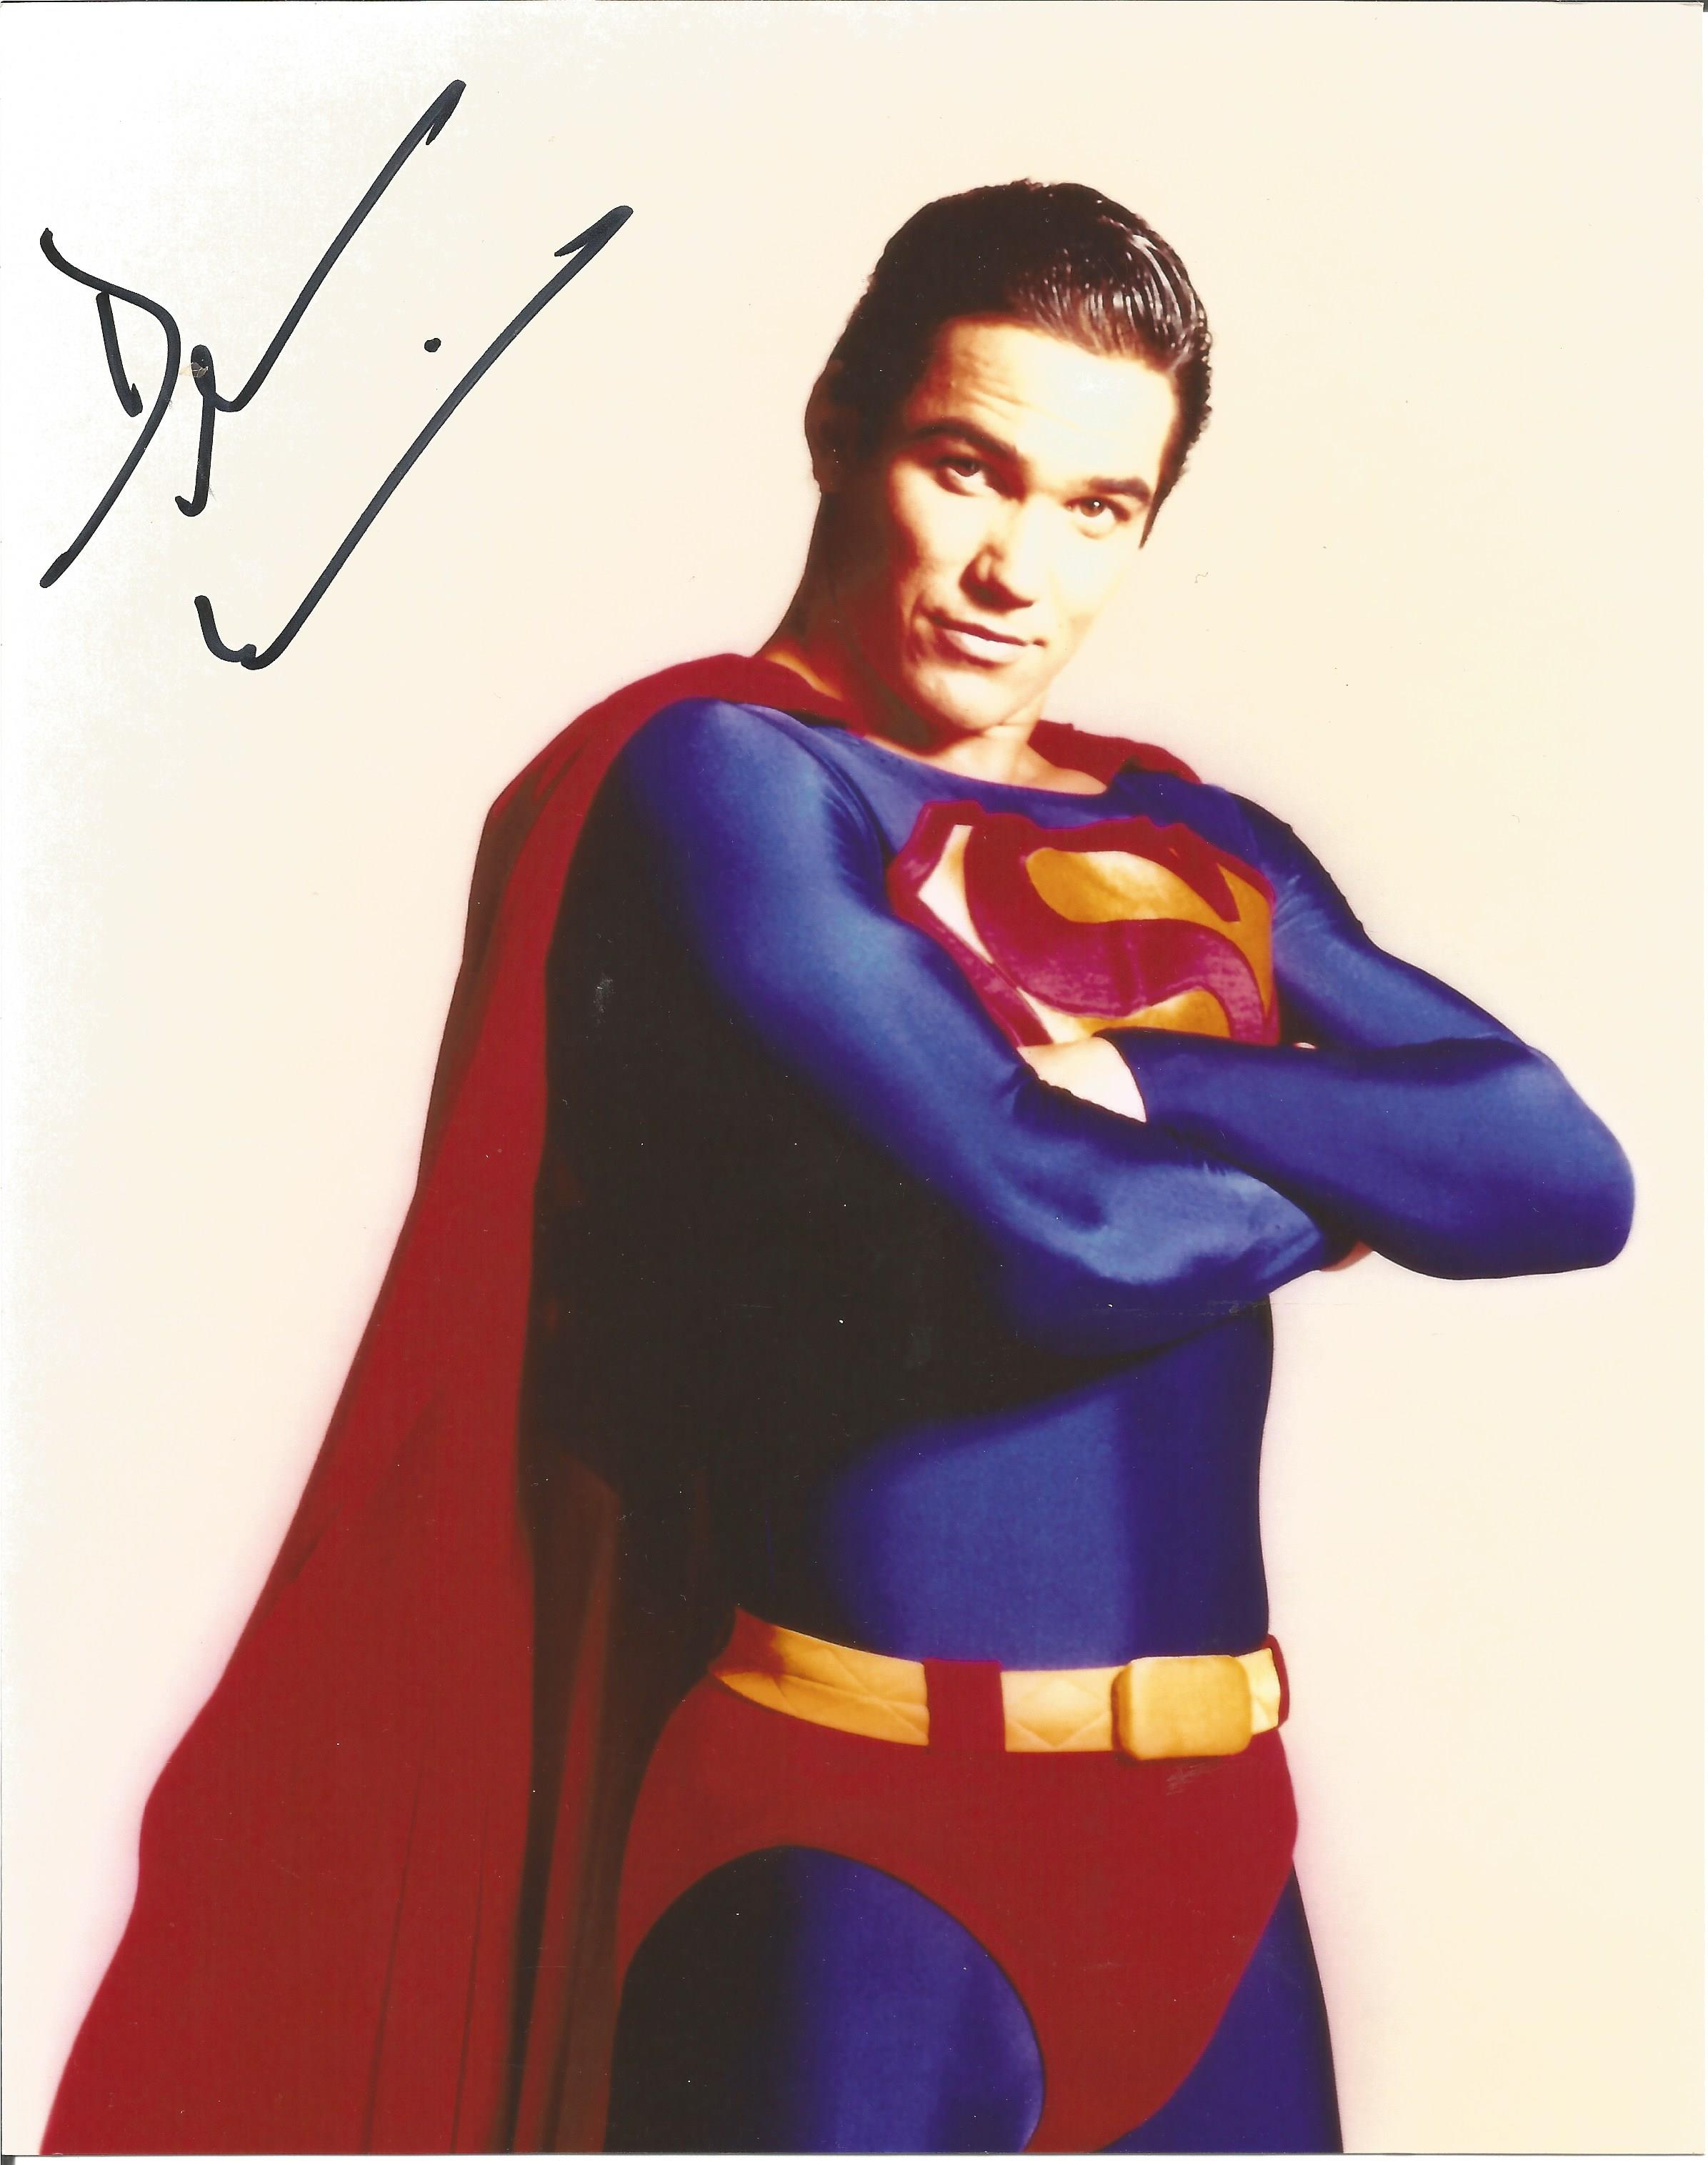 Dean Cain signed 10x8 colour photograph taken during his time playing Clark Kent, Superman. Good